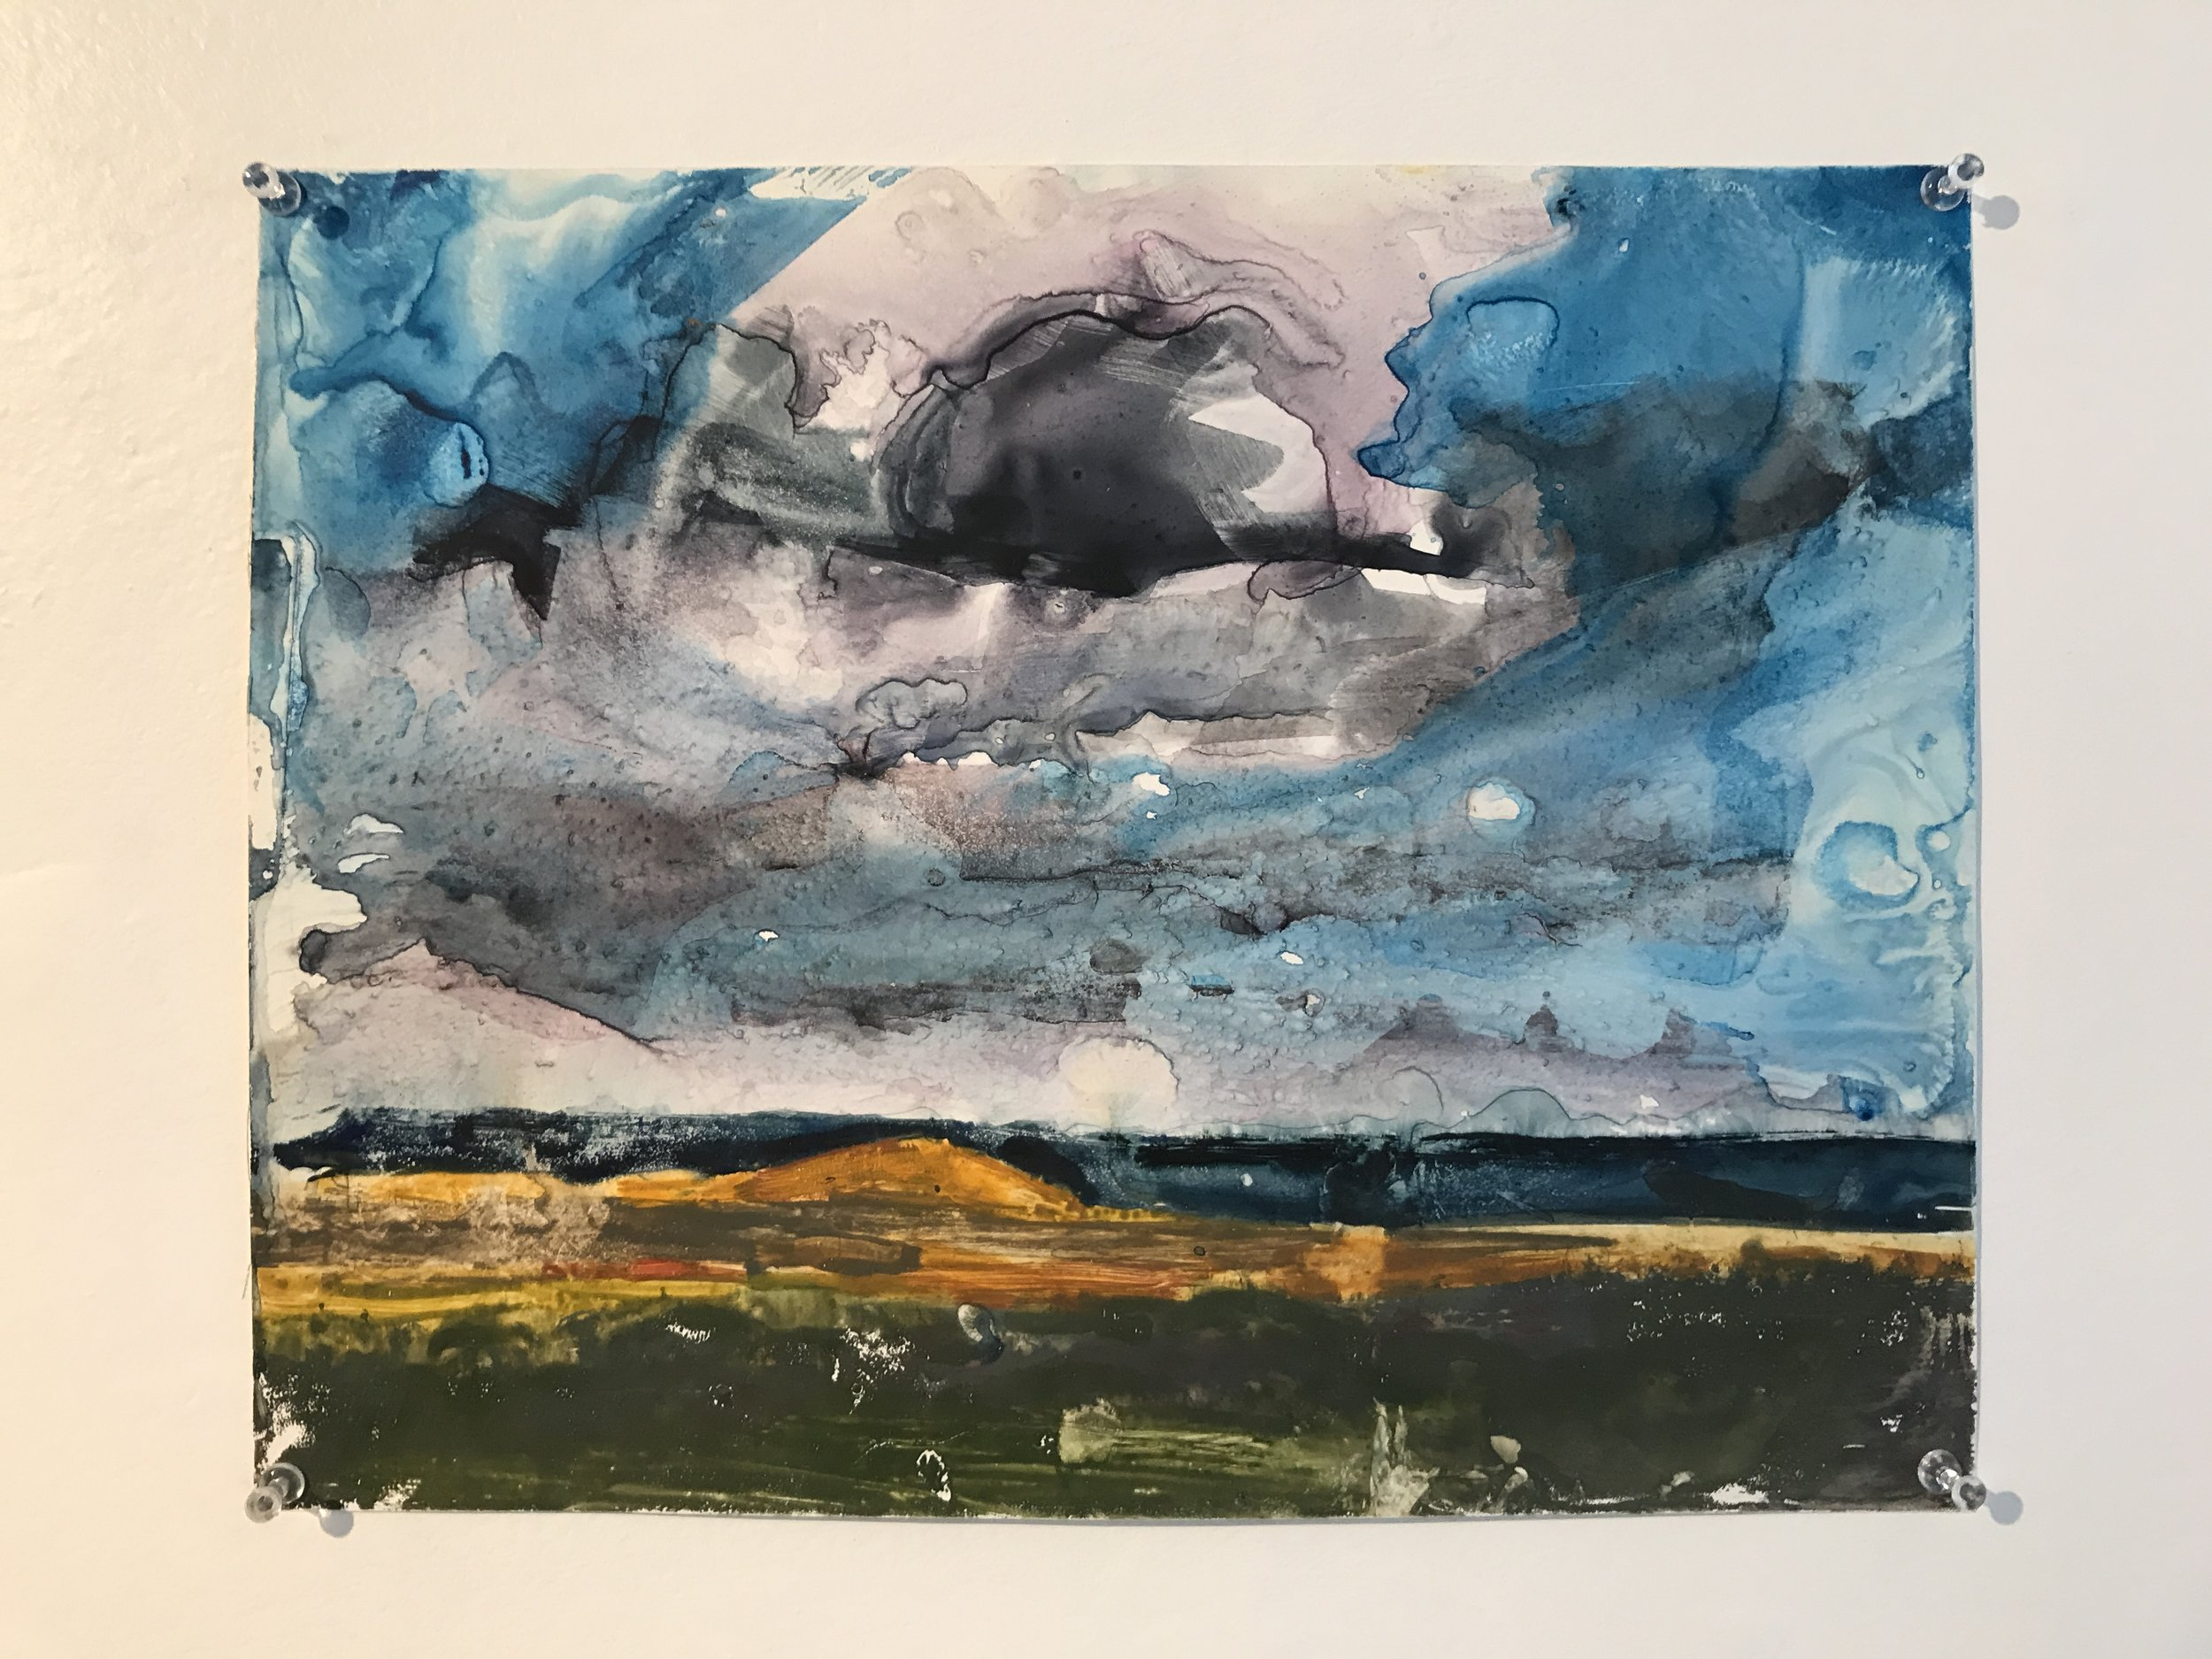 Airplane cloud | 2014 | watercolor on yupo | 11 x 14 in.